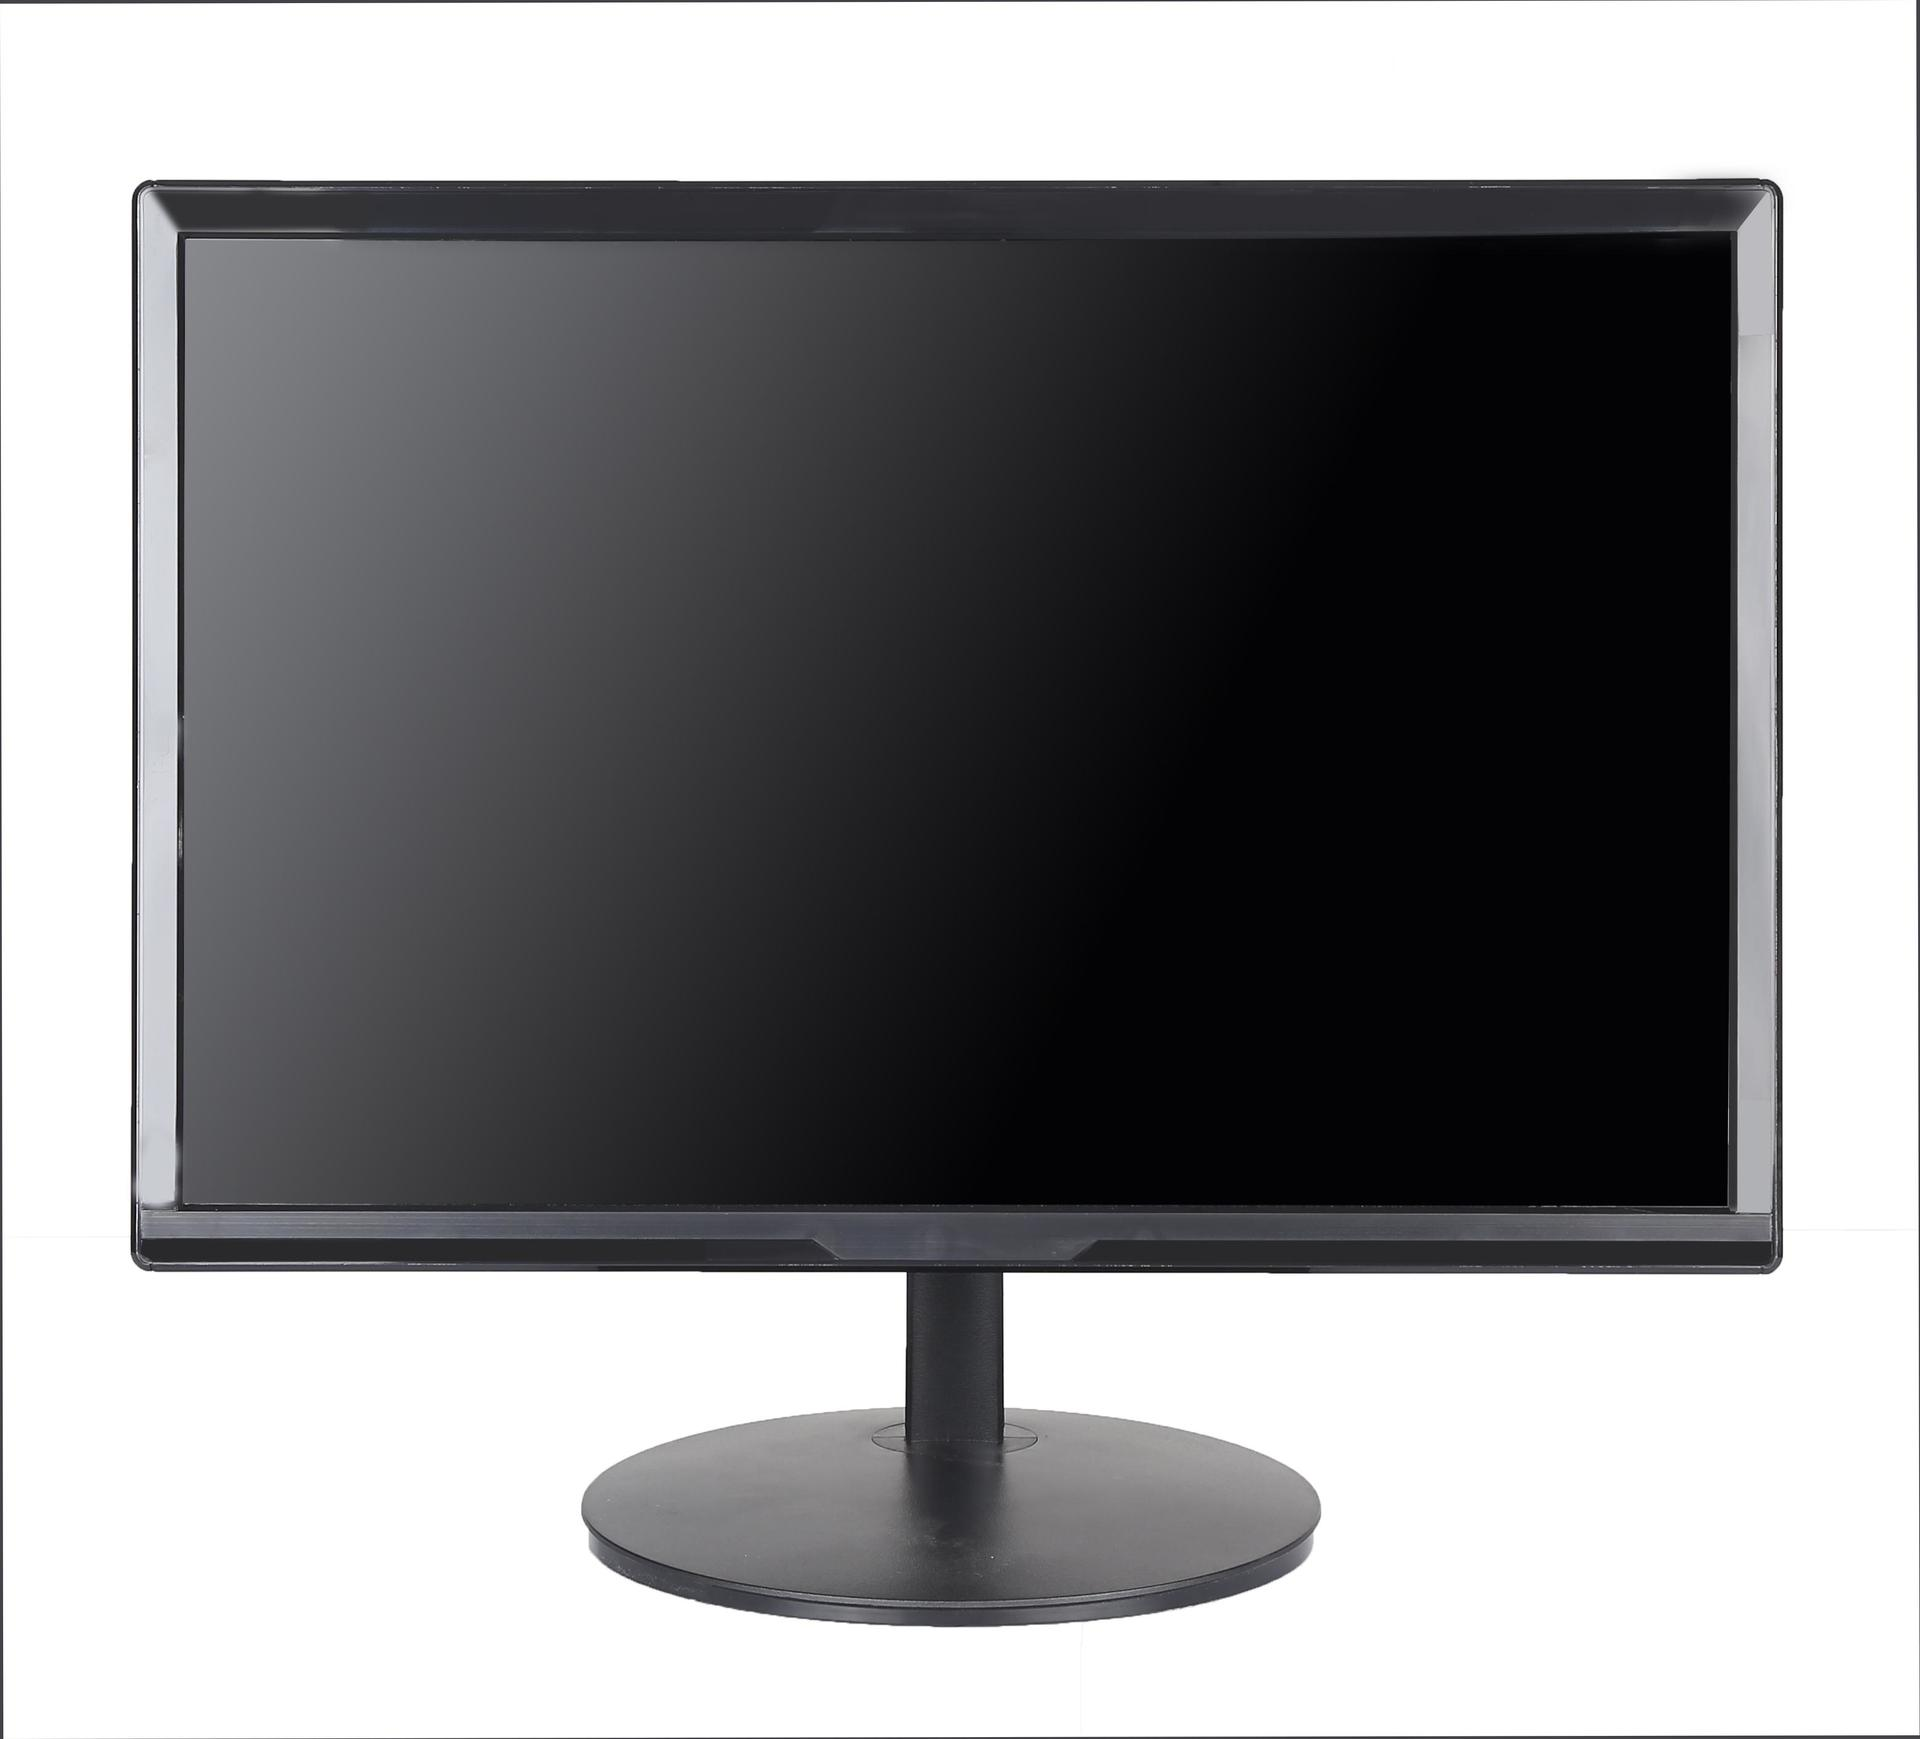 Xinyao LCD 21.5 inch led monitor modern design for lcd screen